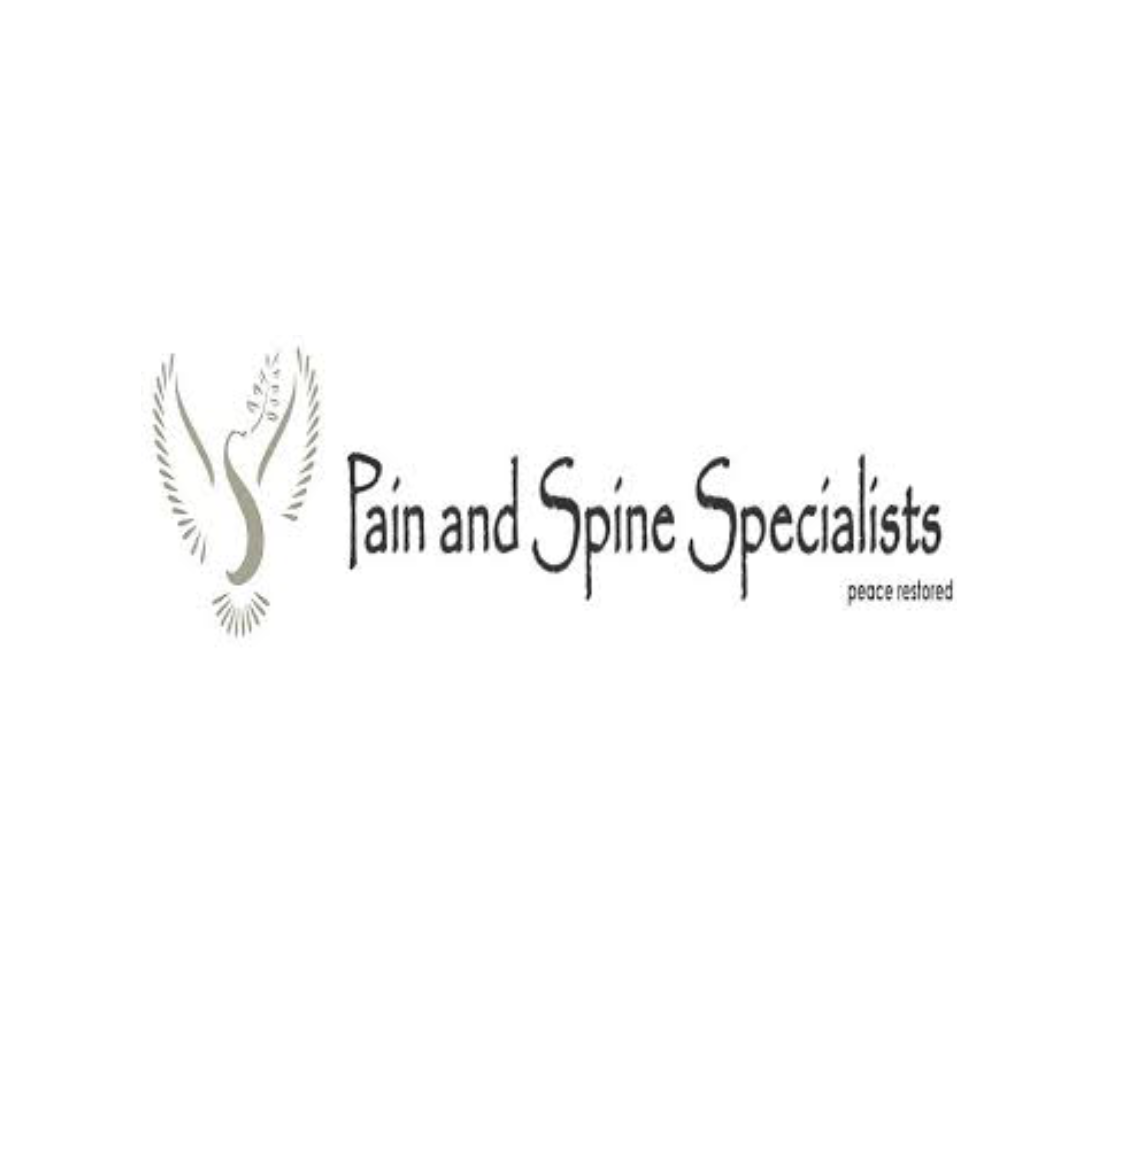 Pain and Spine Specialists